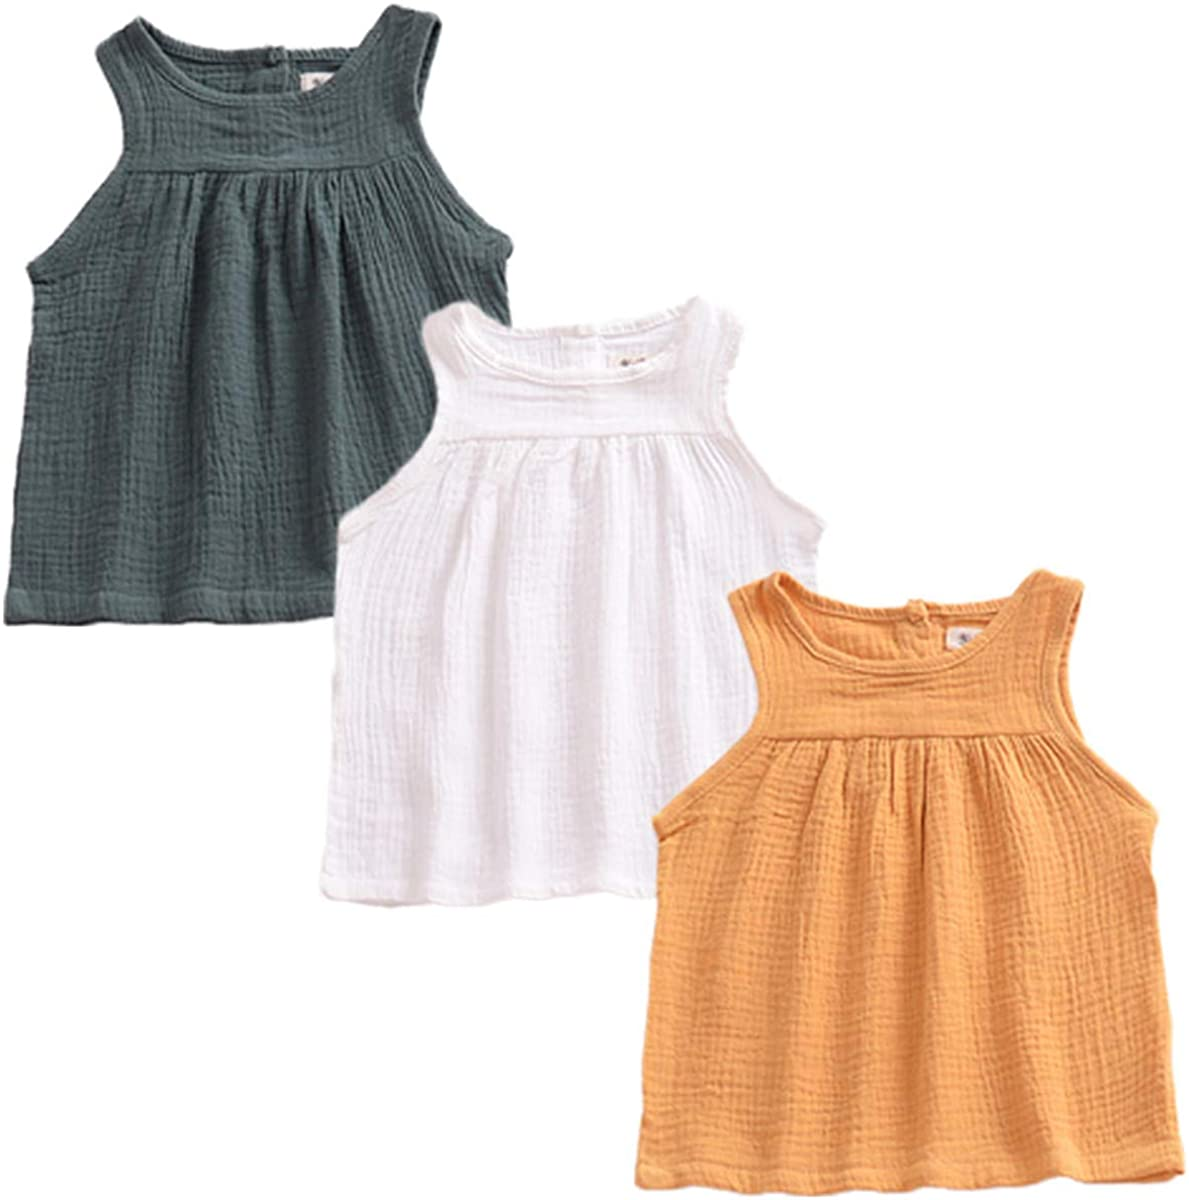 YAKETERA 3 Pack of Baby Toddle Infant Girls Cotton Linen Blend Tank Tops T Shirts Blouse